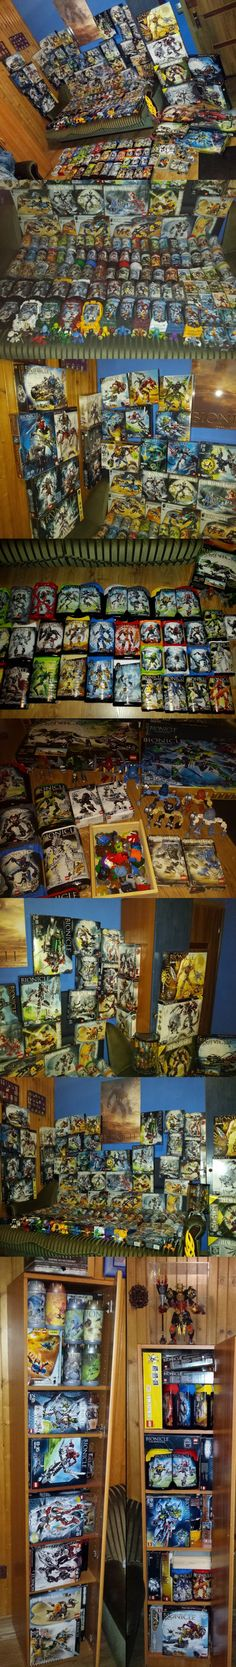 After 16 years, I finally complete my collection of Bionicle Generation 1